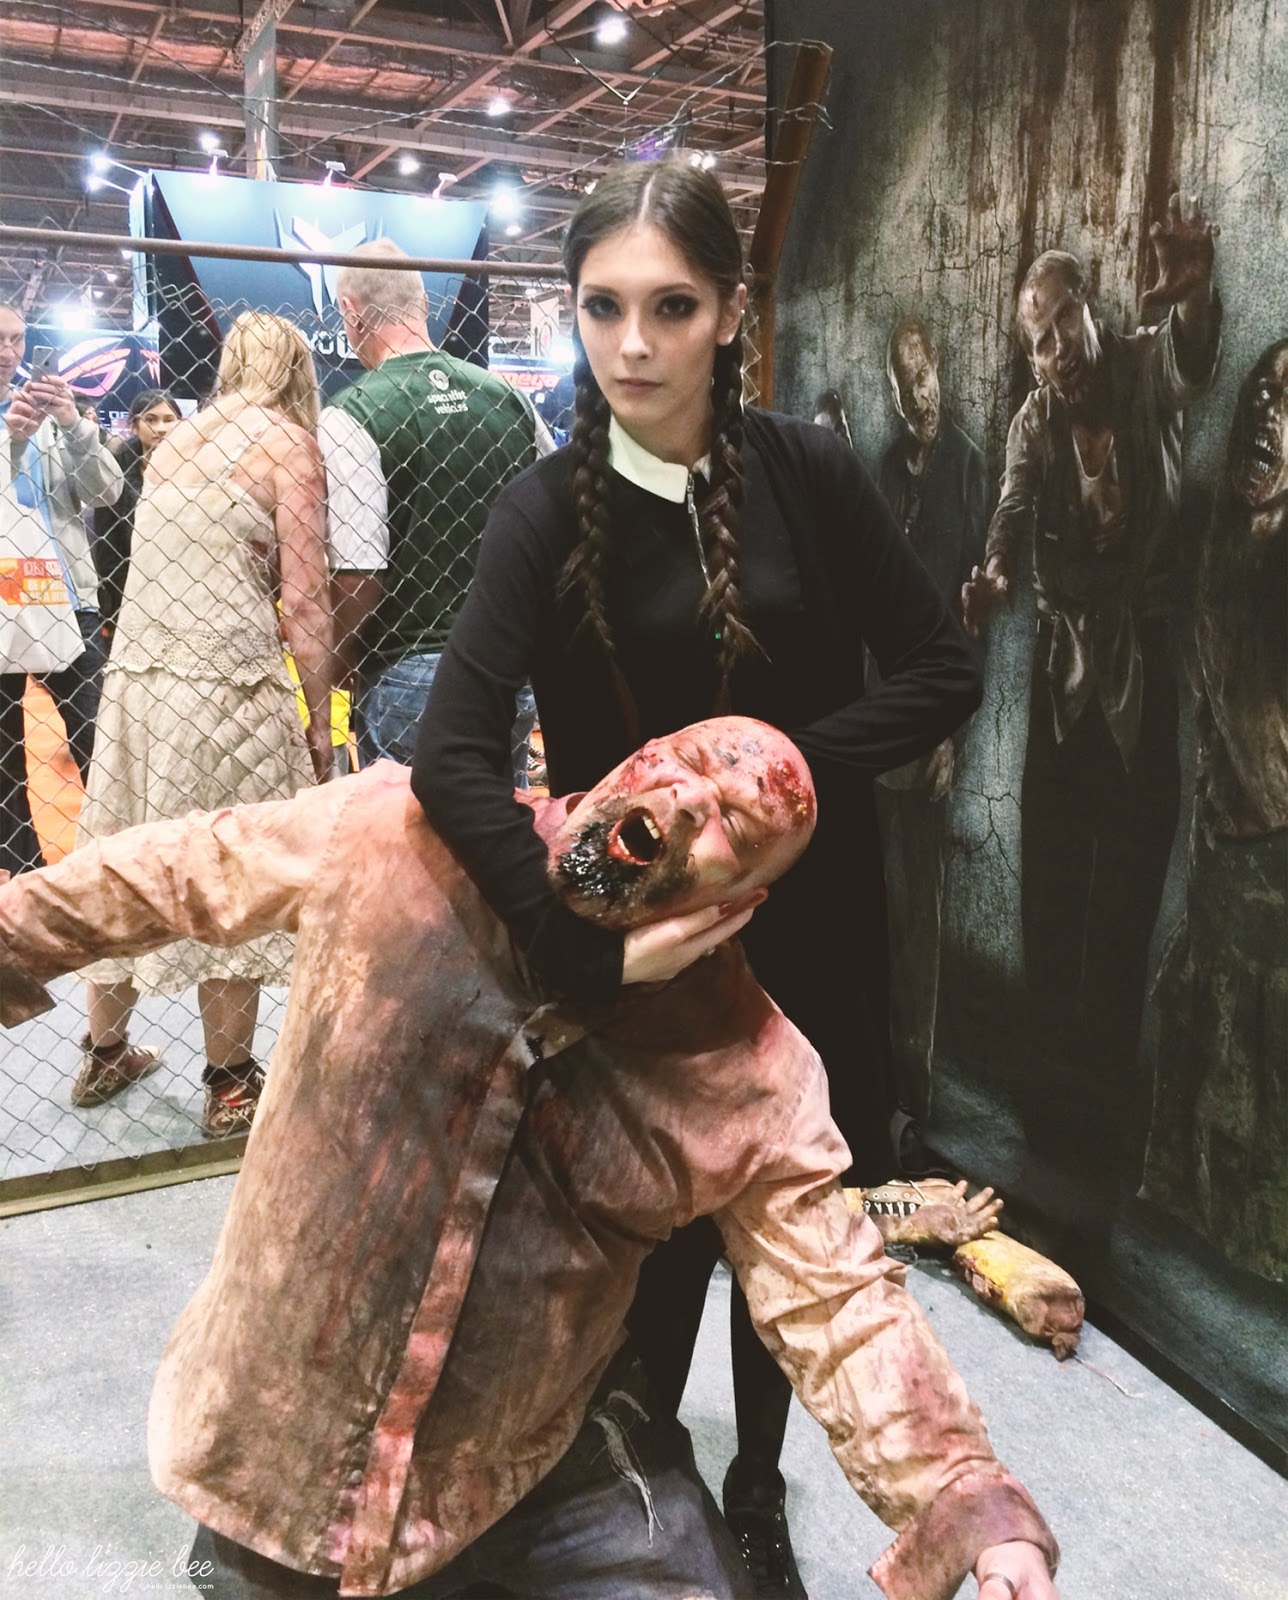 zombie, the walking dead, mcm expo, cosplay